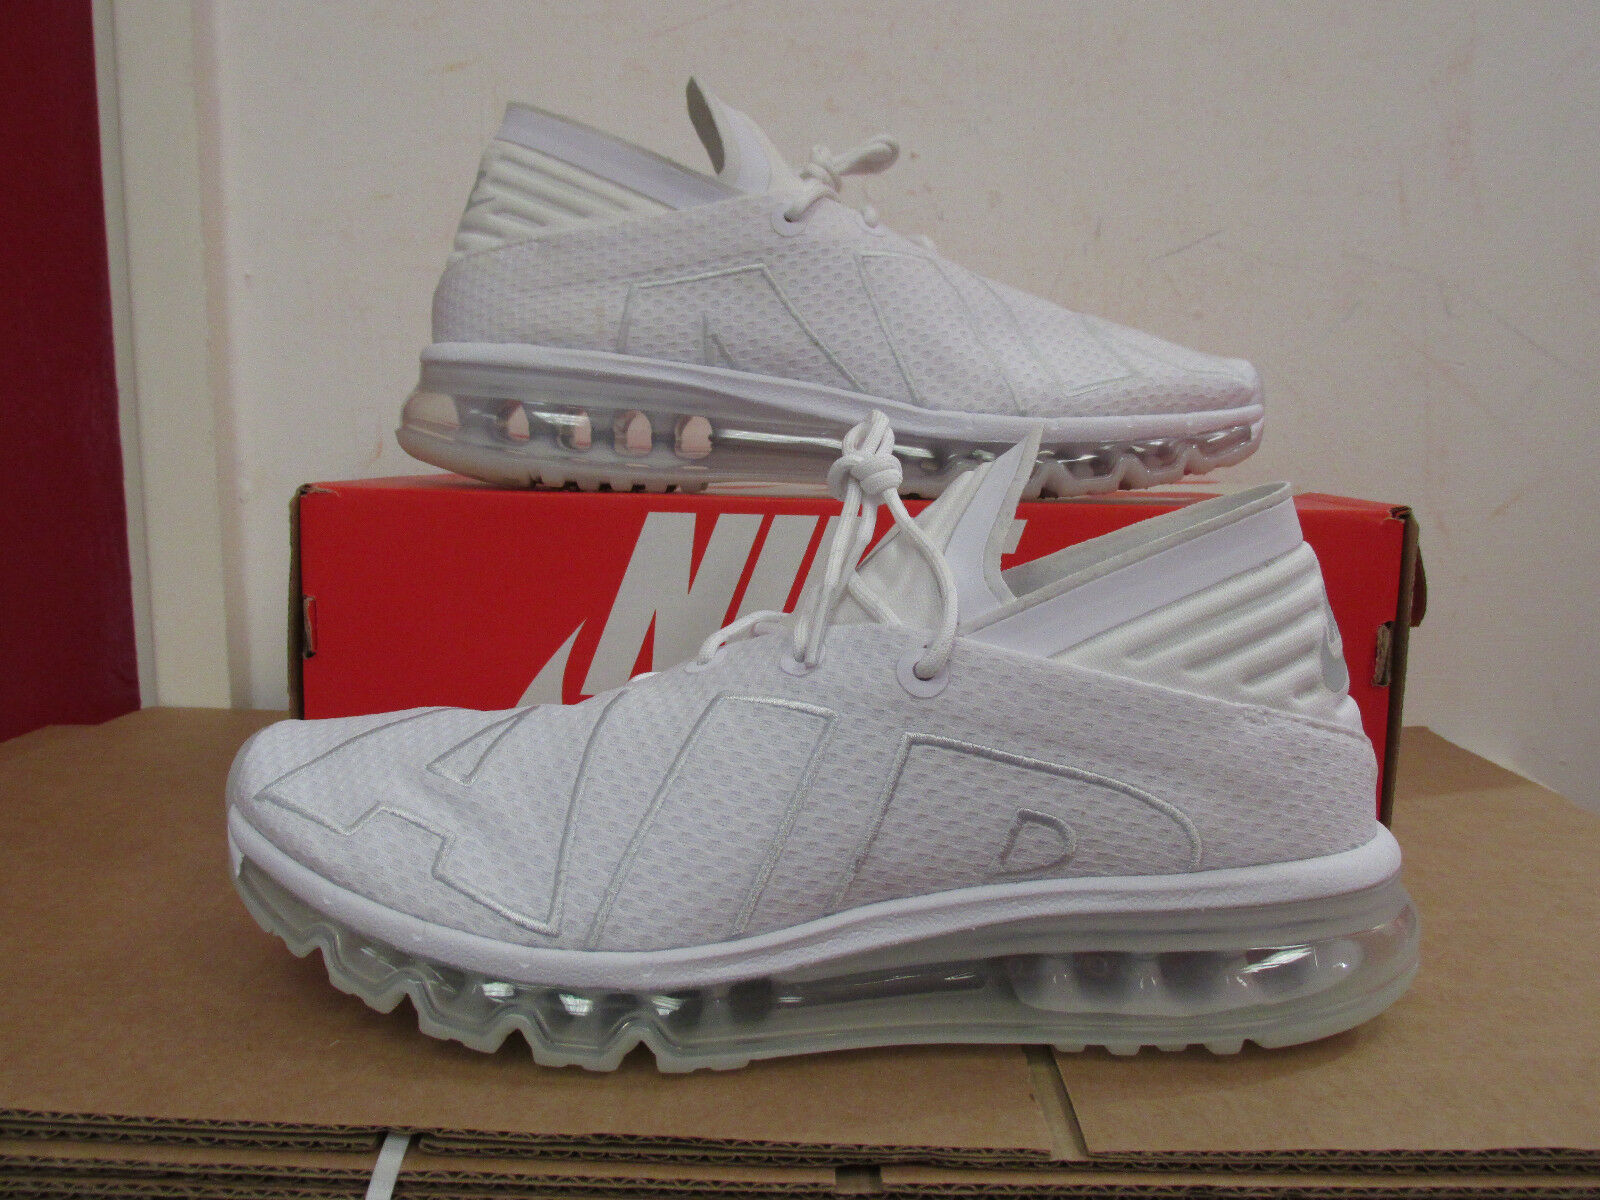 b06fcd983e Nike Air Max Flair Mens Size 9.5 Running Shoes White / Platinum ...